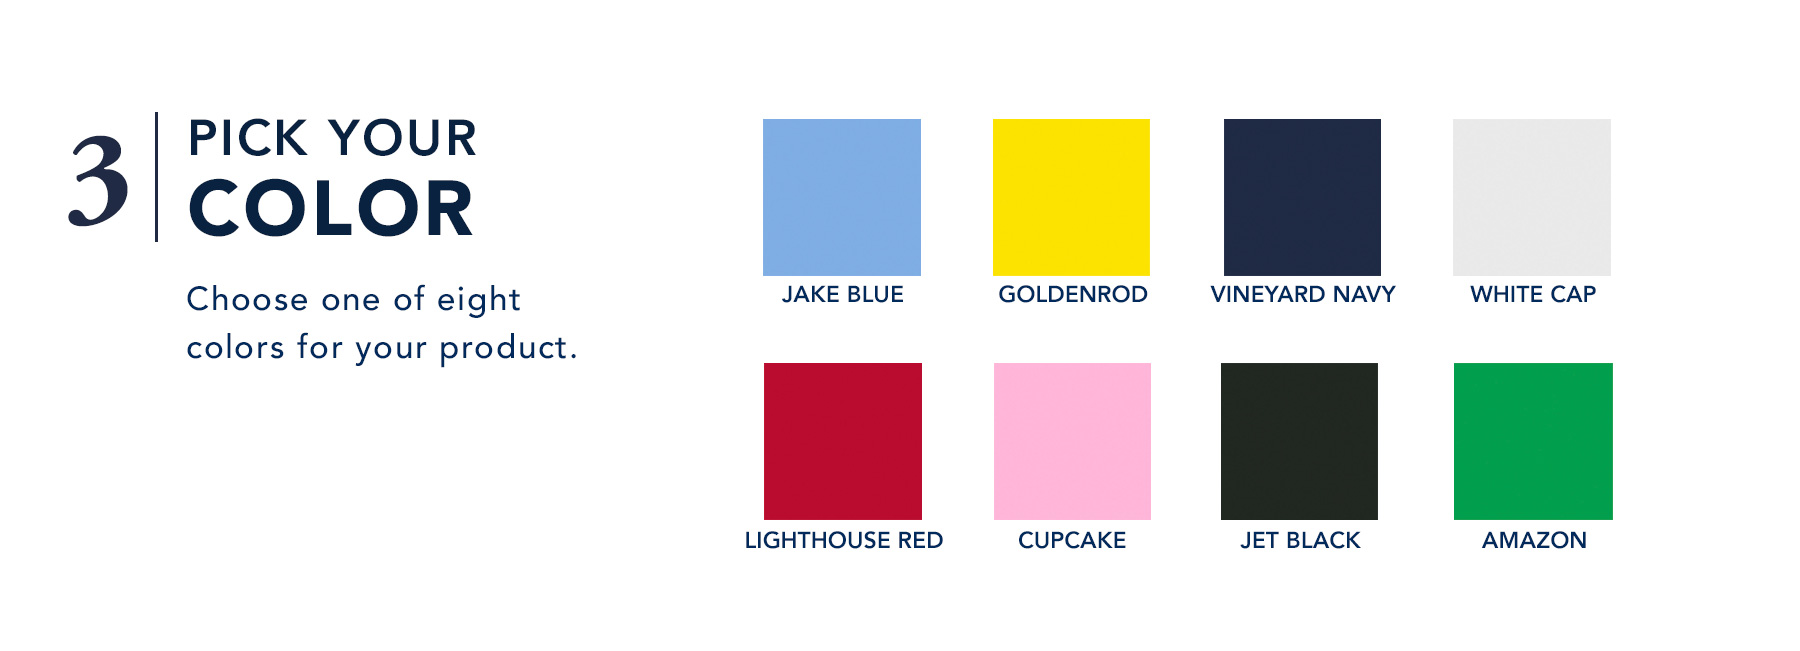 3. Pick your color - Choose one of eight colors for your product.